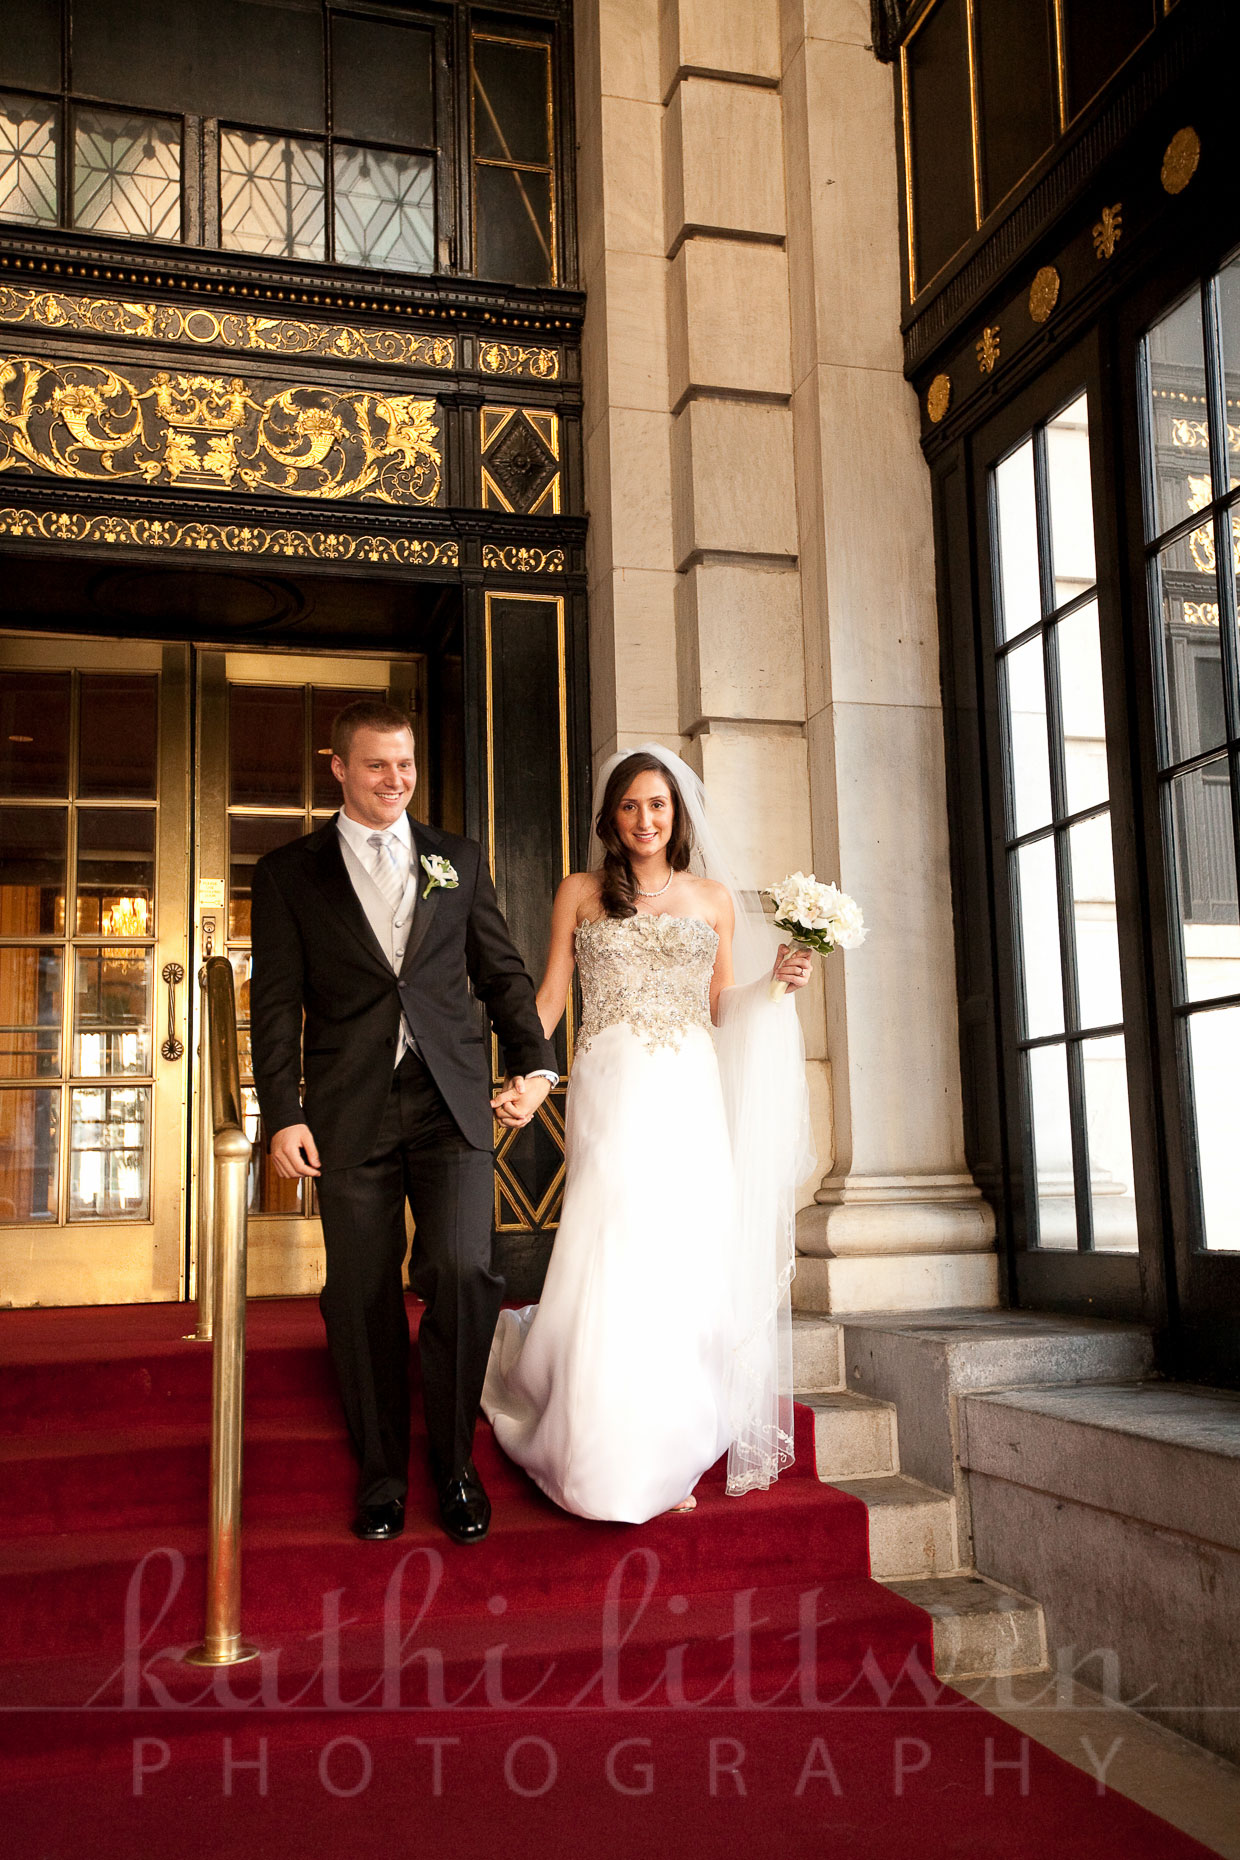 Kathi_Littwin_Photography_Plaza_NYC_Wedding-2033